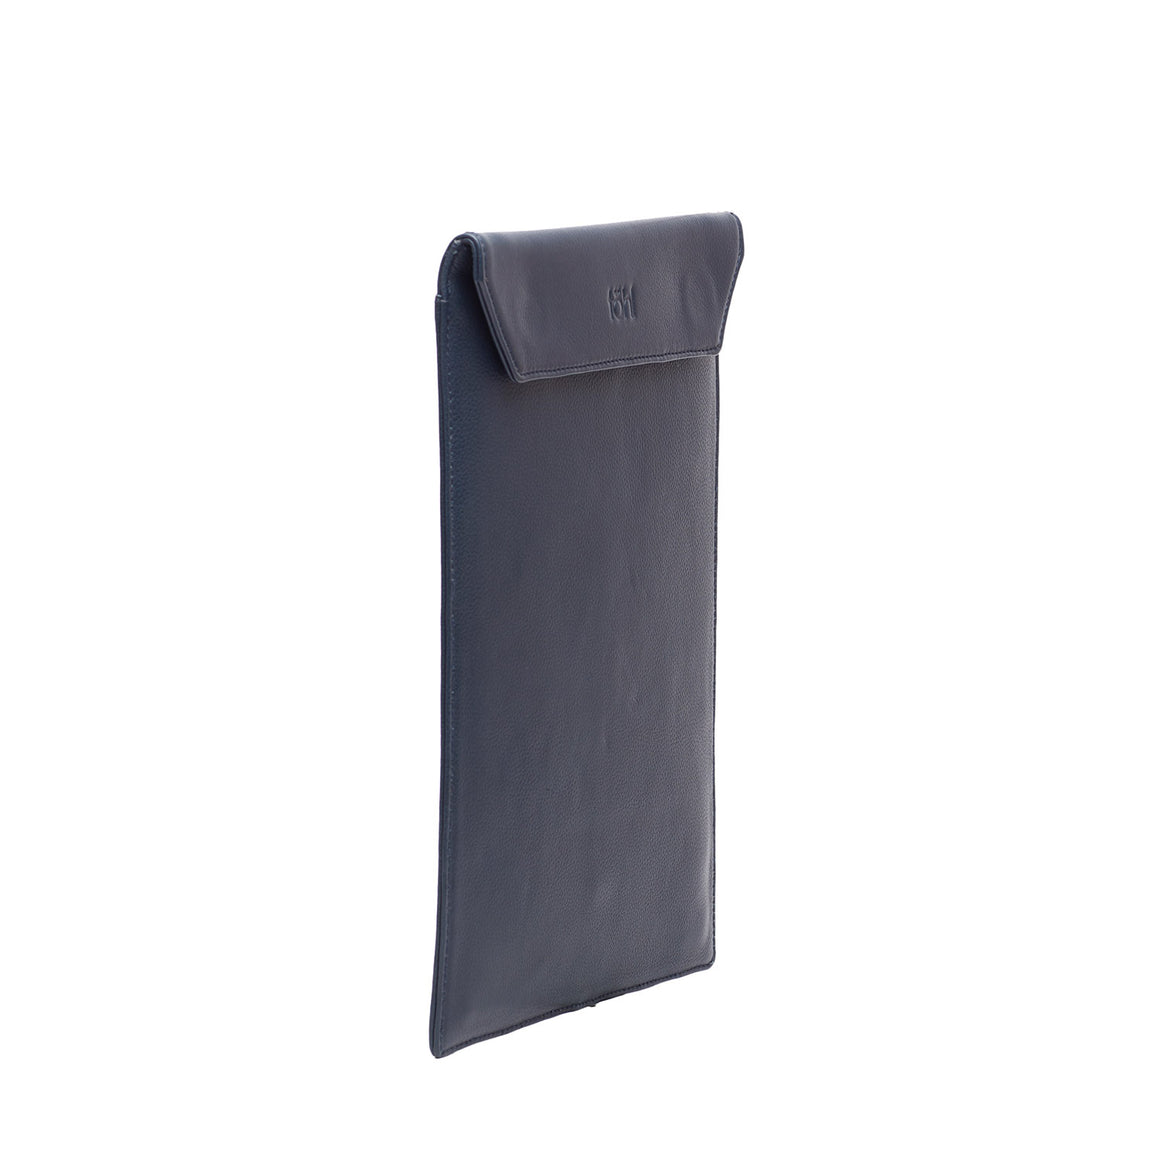 LC 0004 - TOHL MALUS MEN'S IPAD SLEEVE - NAVY